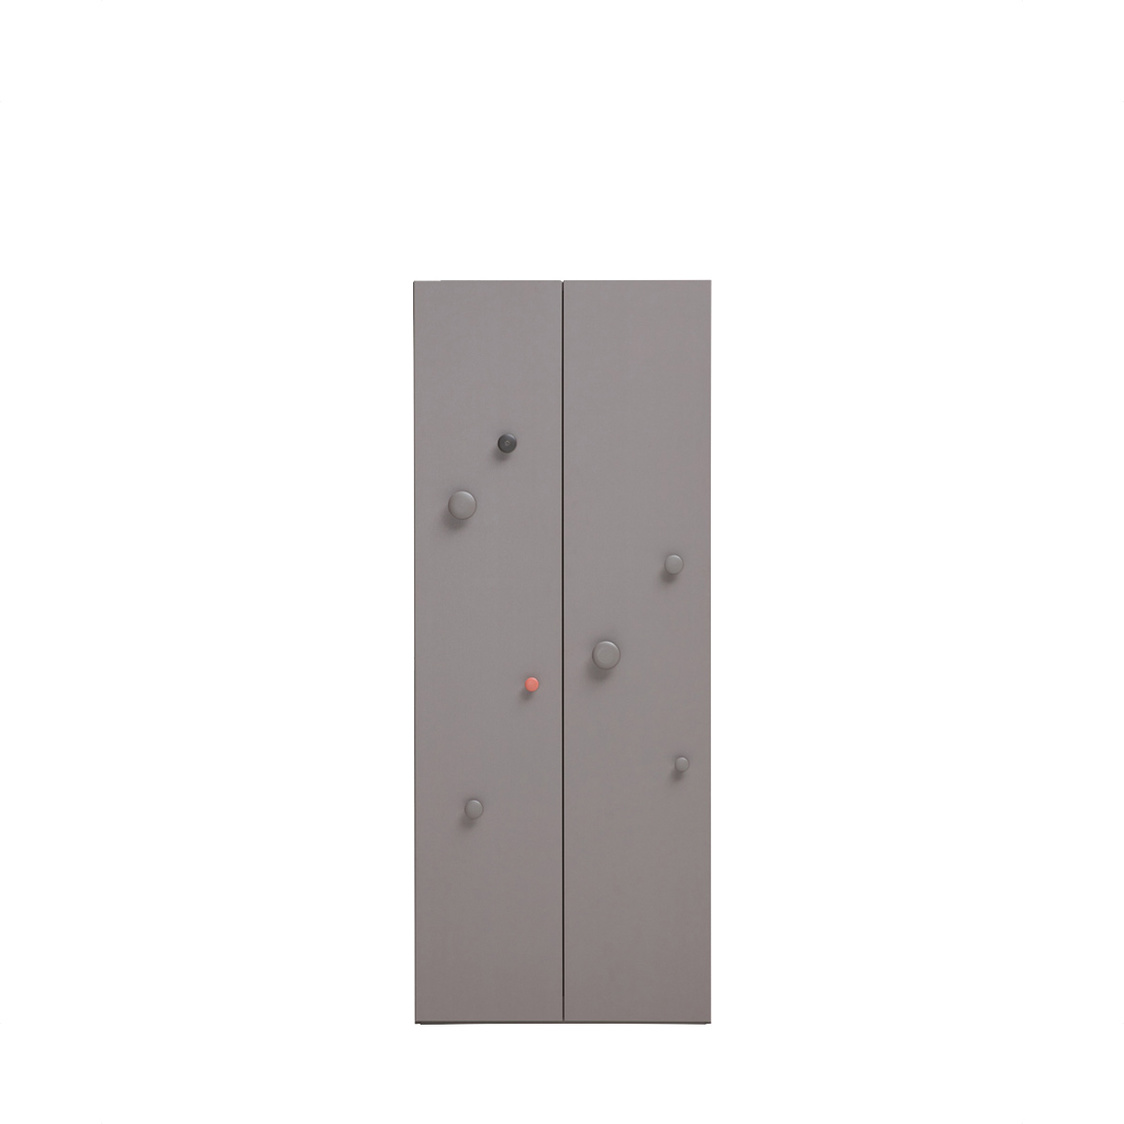 TAILOR 800W Coordination Door HW3081-GU